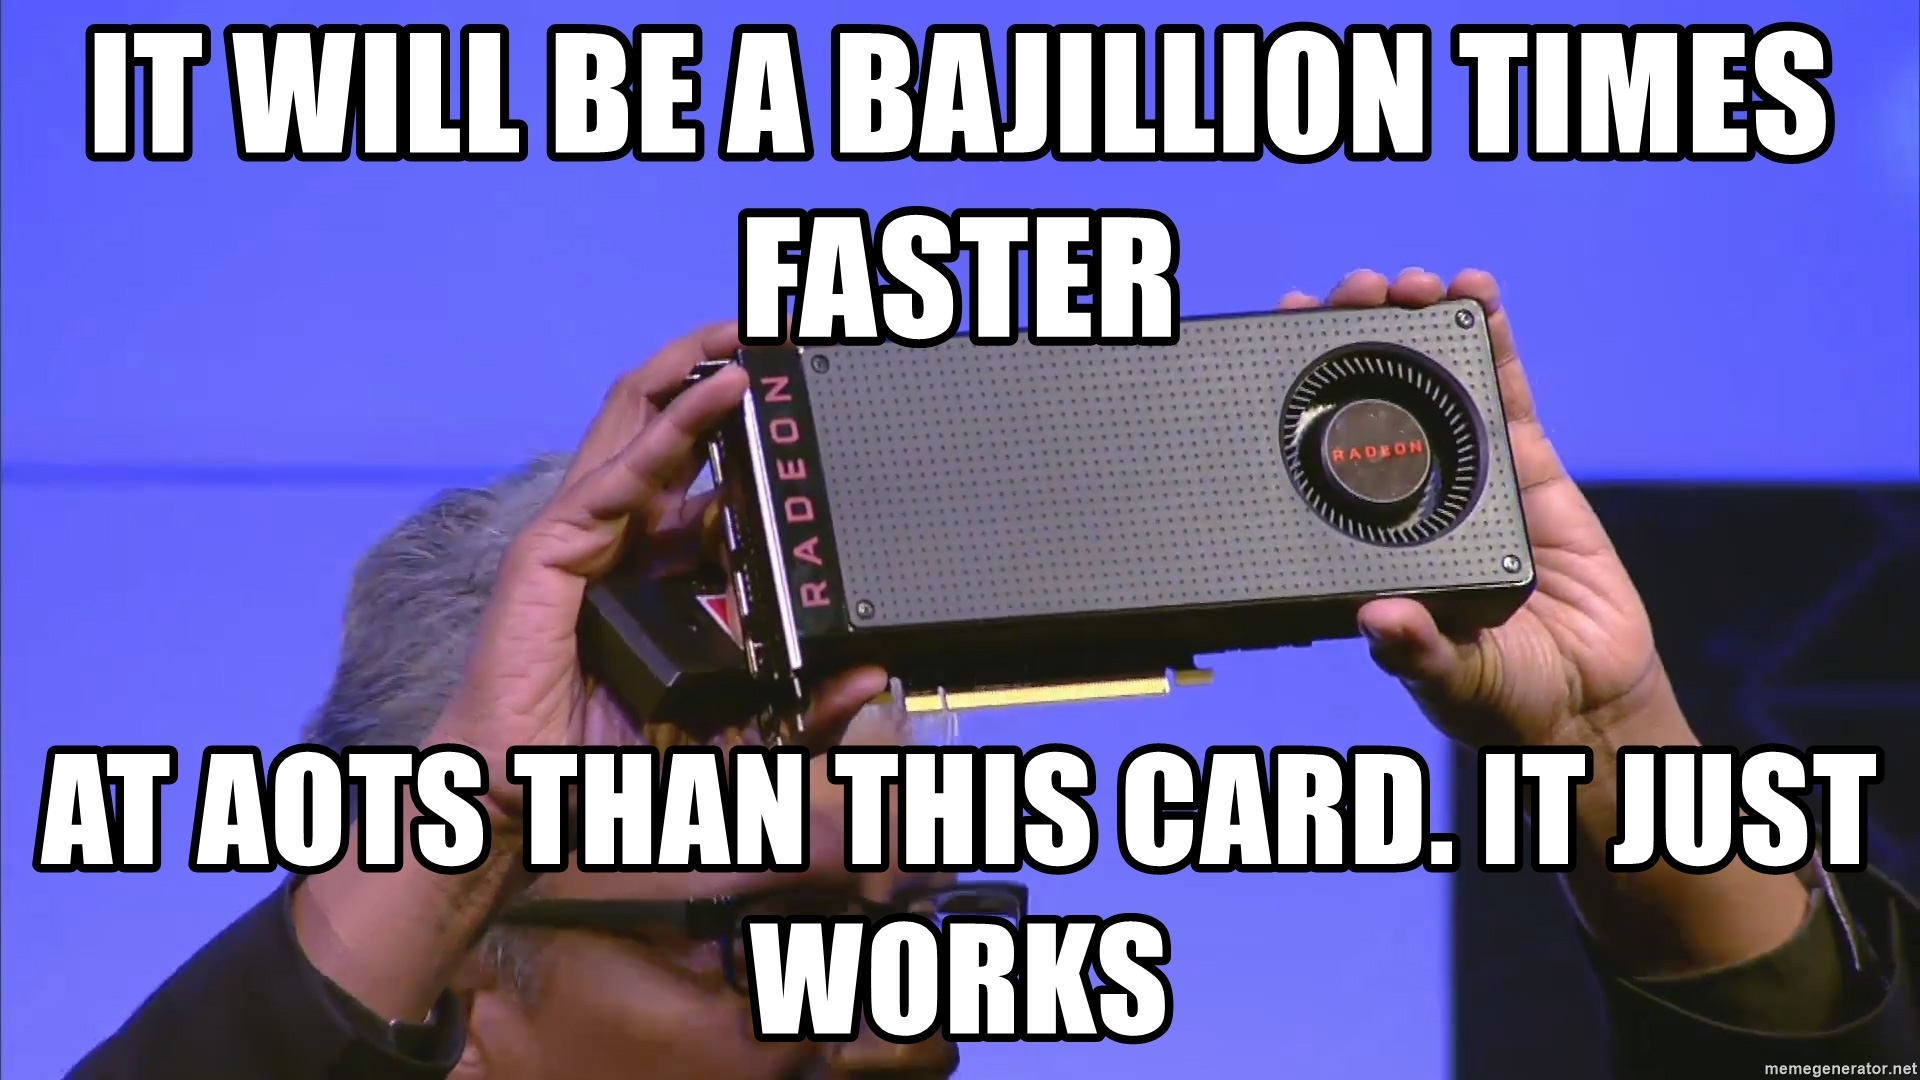 it-will-be-a-bajillion-times-faster-at-aots-than-this-card-it-just-works.jpg